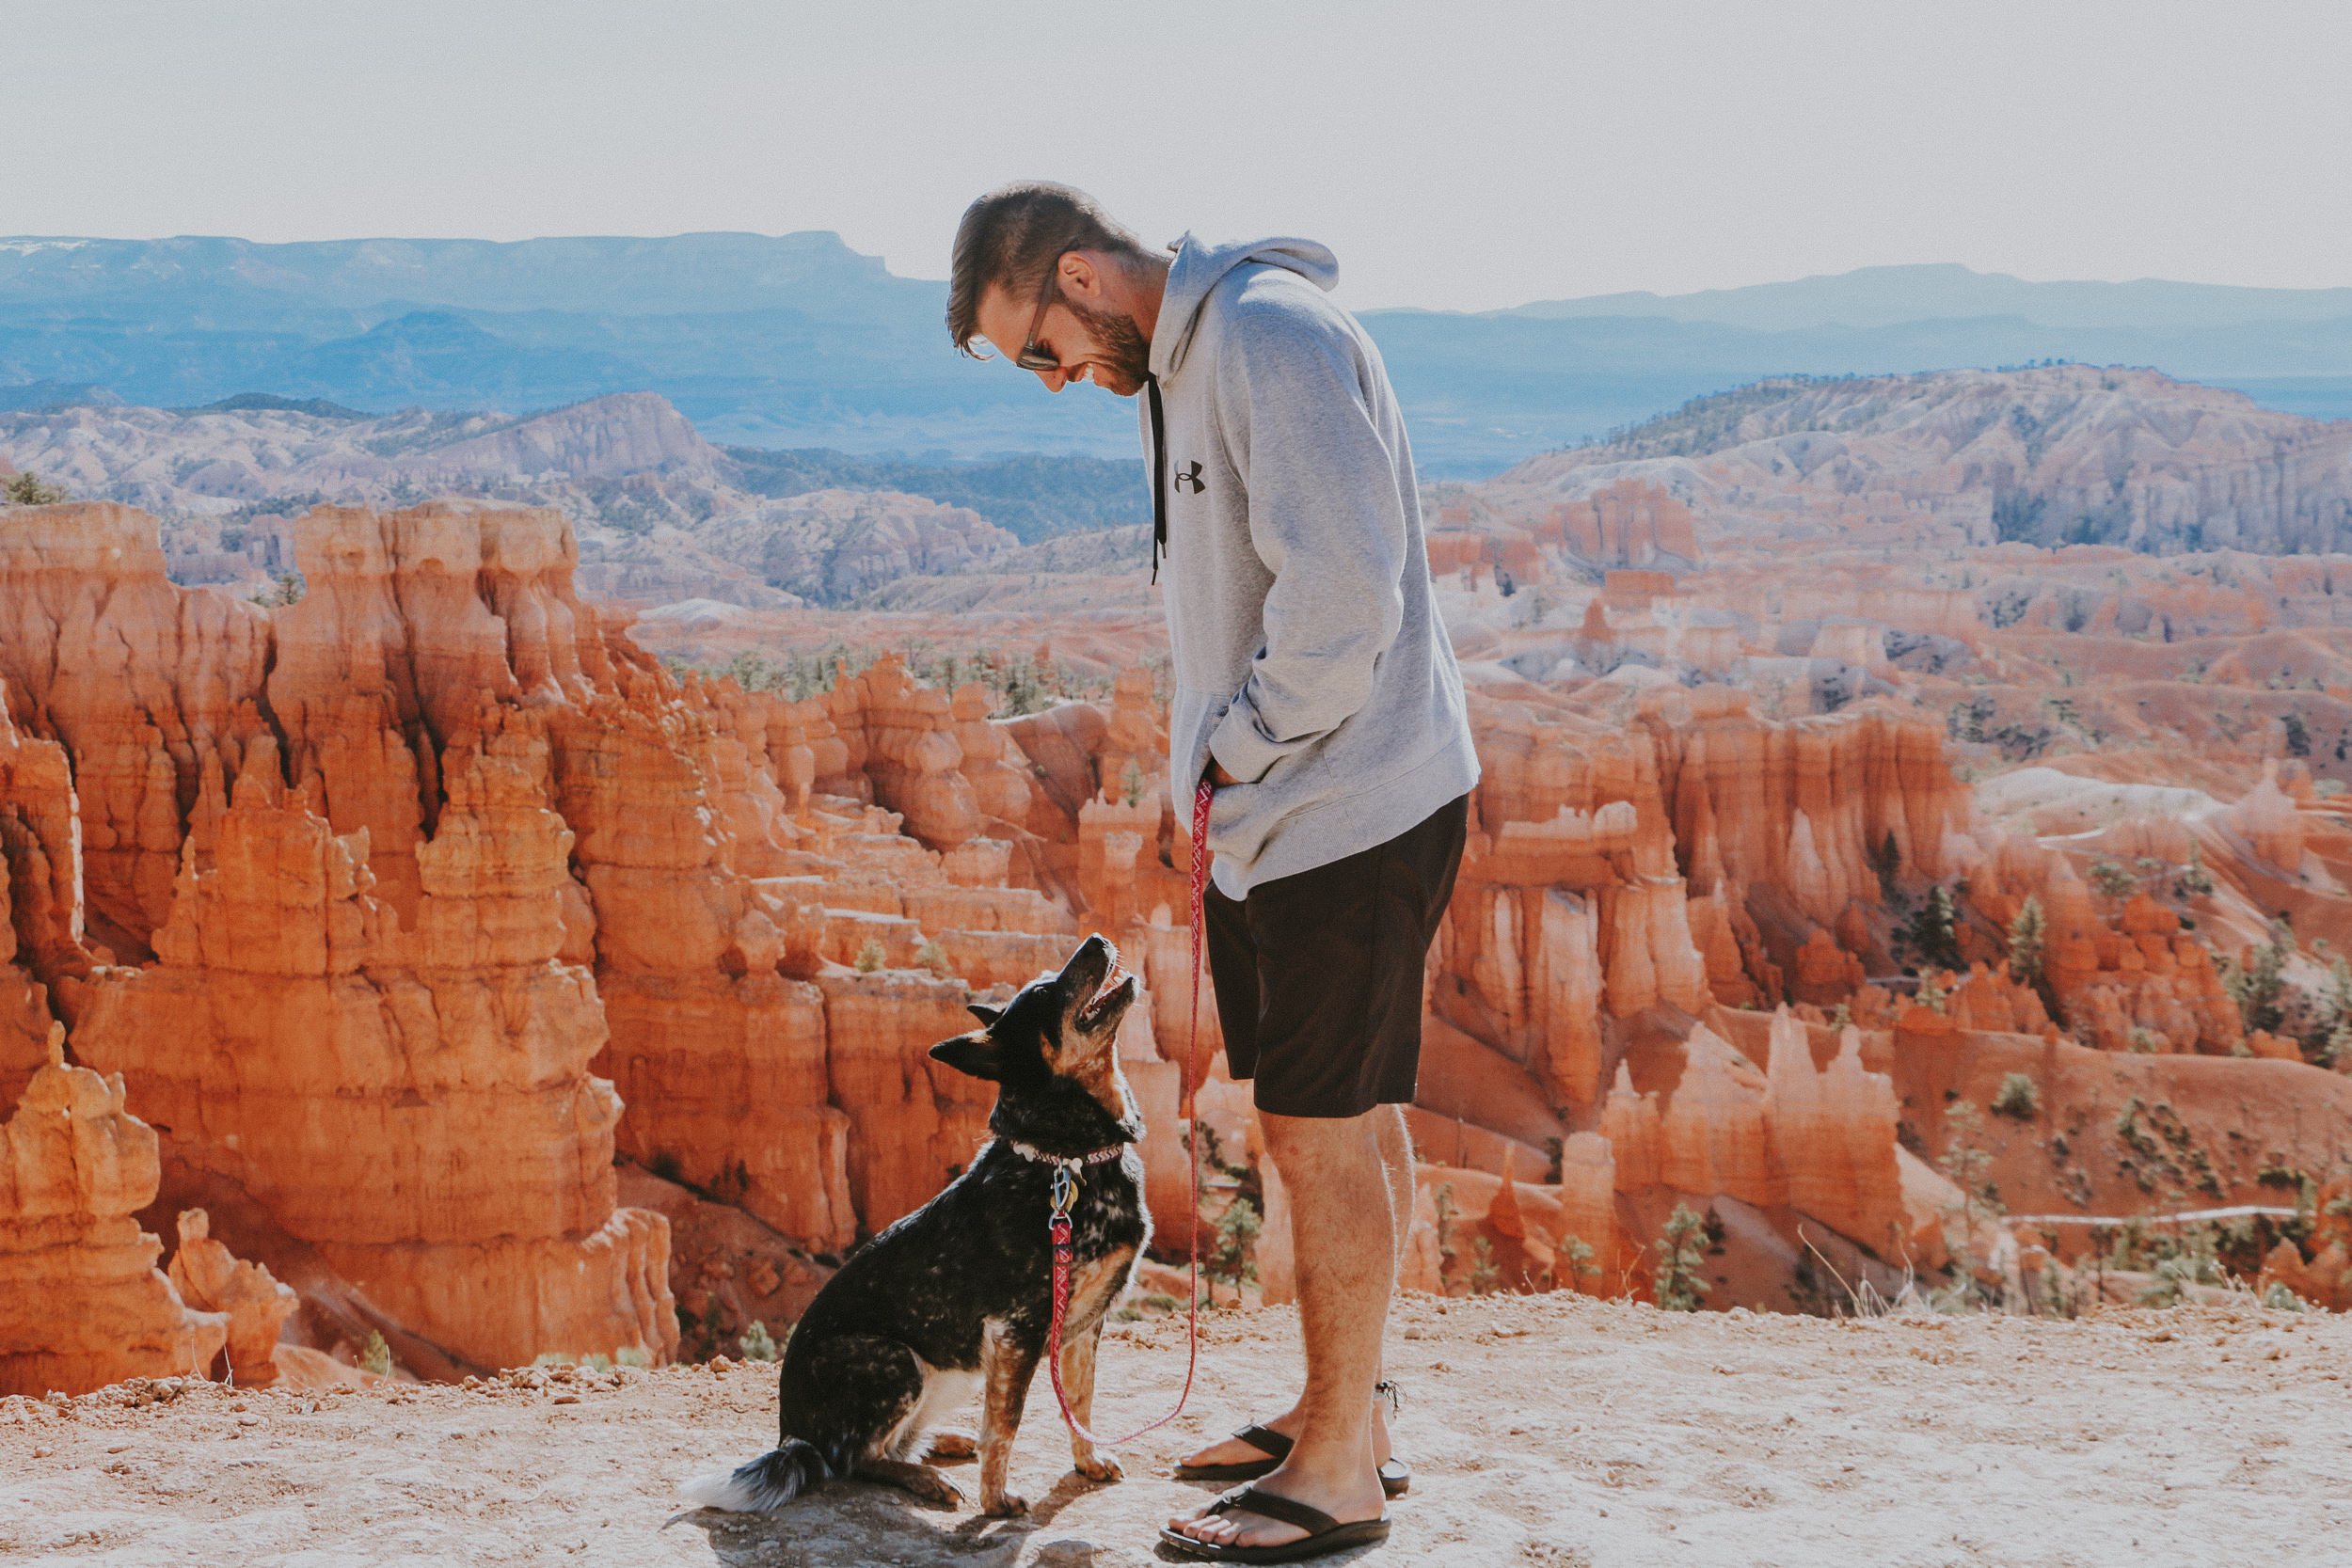 Cute boy and cute dog at Bryce Canyon National Park